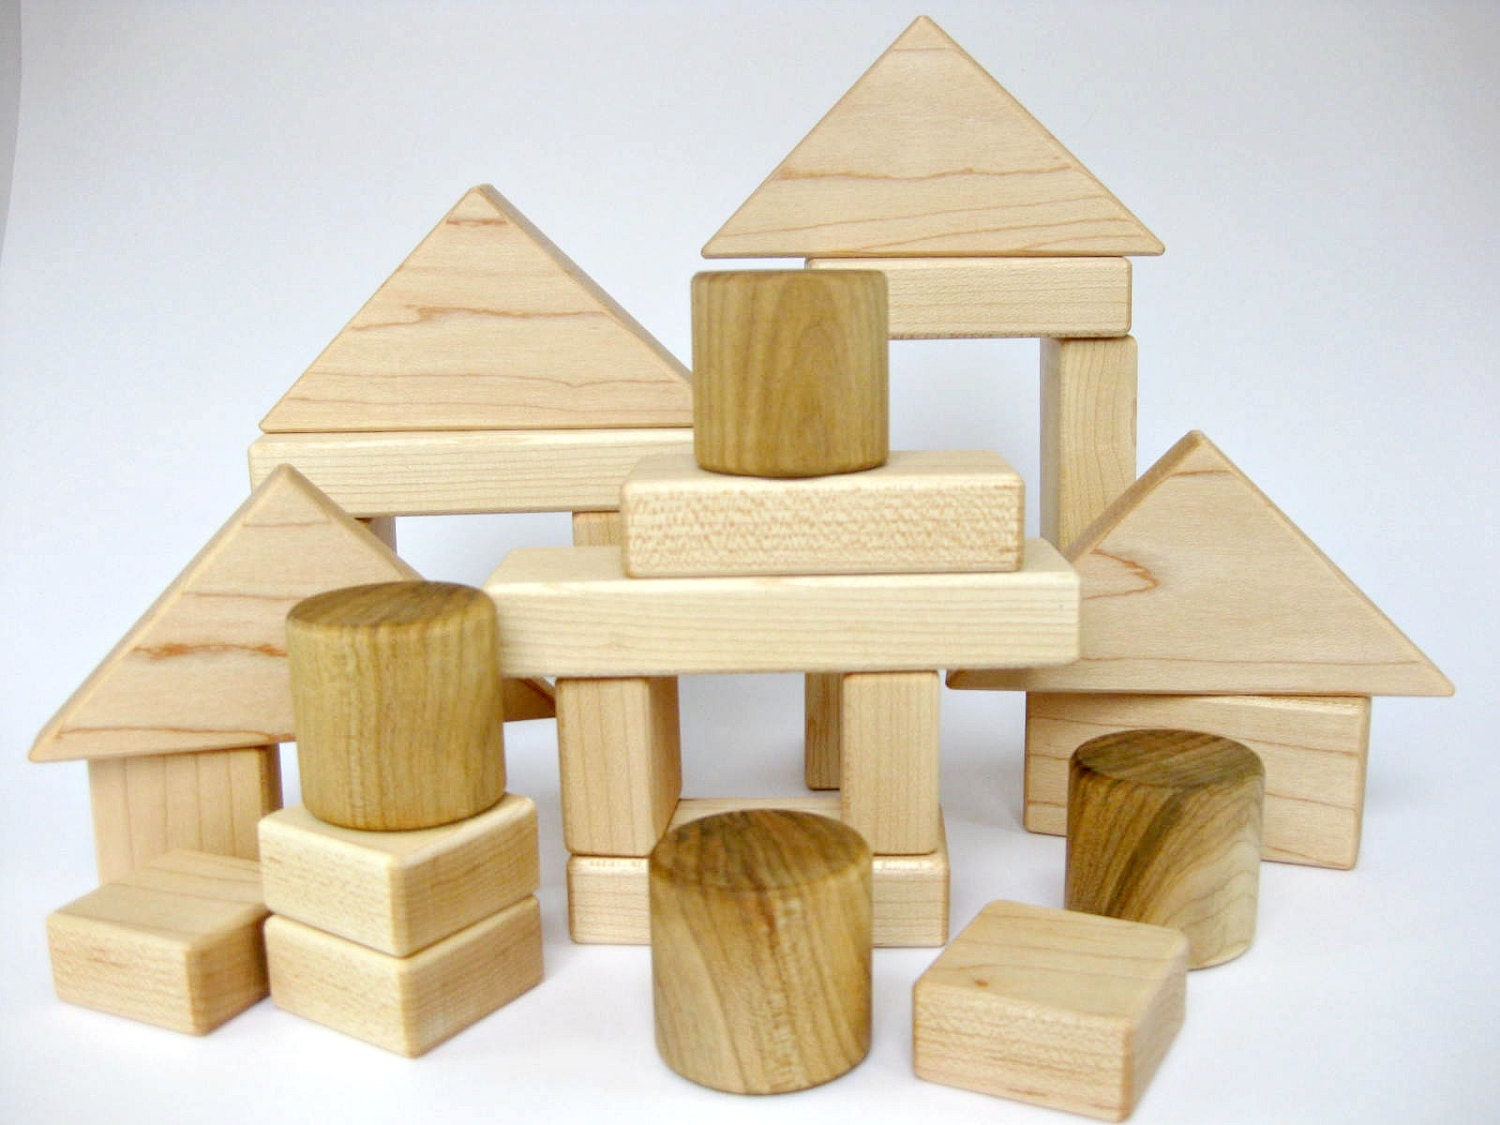 Wooden Blocks For Toddlers ~ Wooden building blocks set of wood toddler toy by